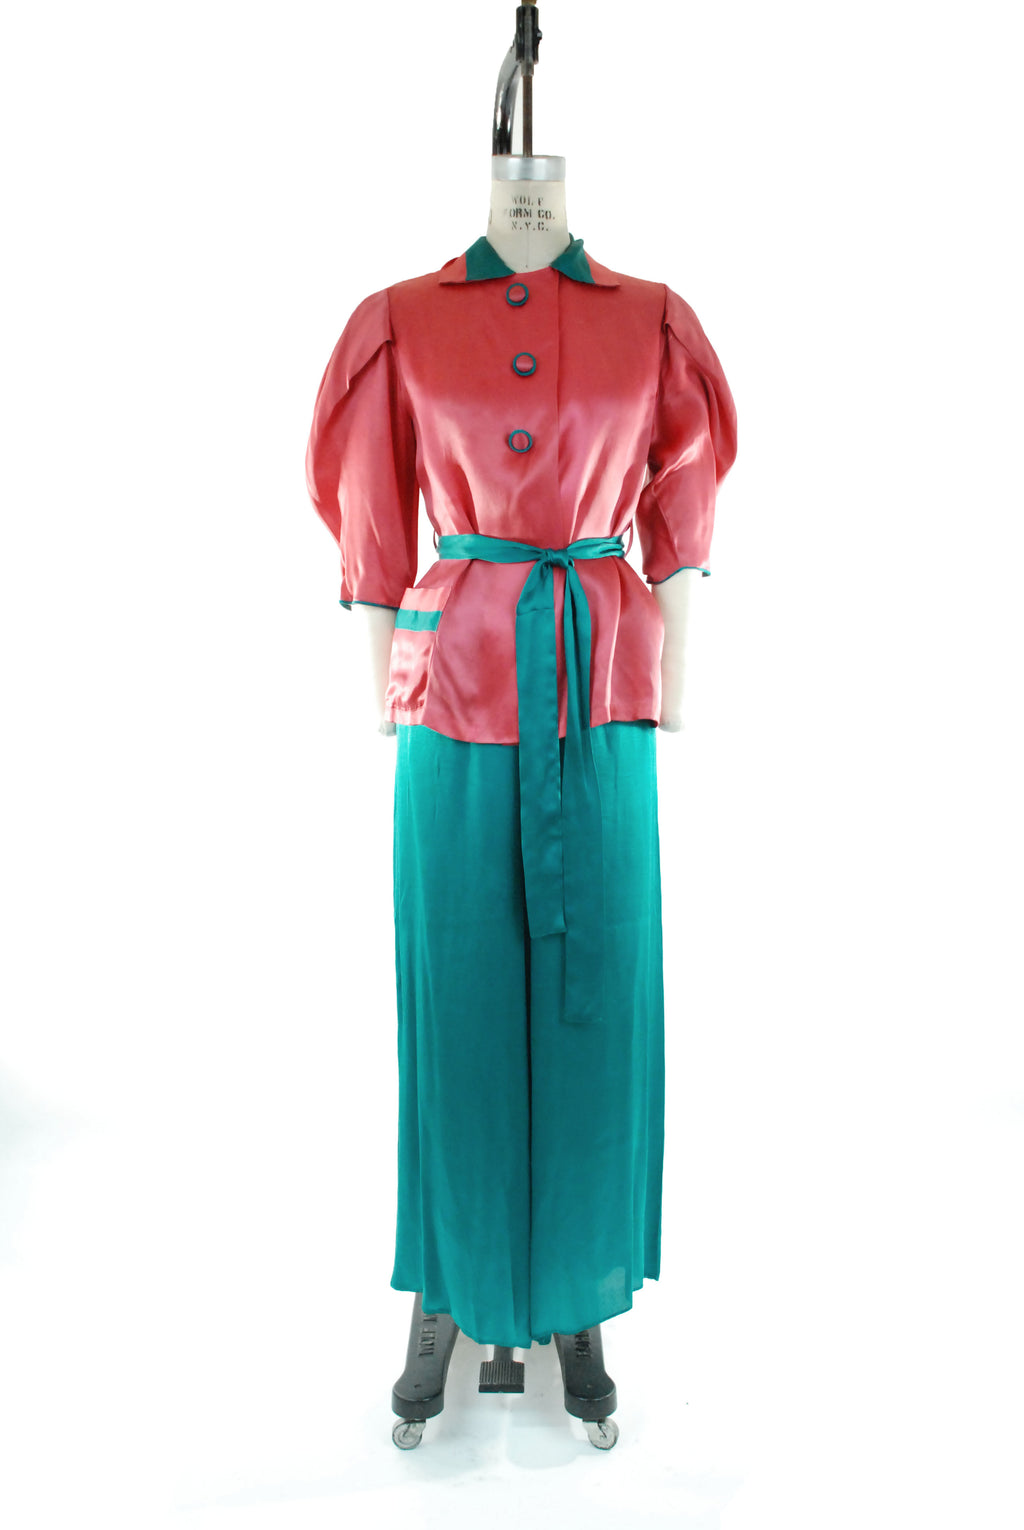 Gorgeous 1940s Satin Pajamas Loungwear in Fuchsia and Teal Colorblock